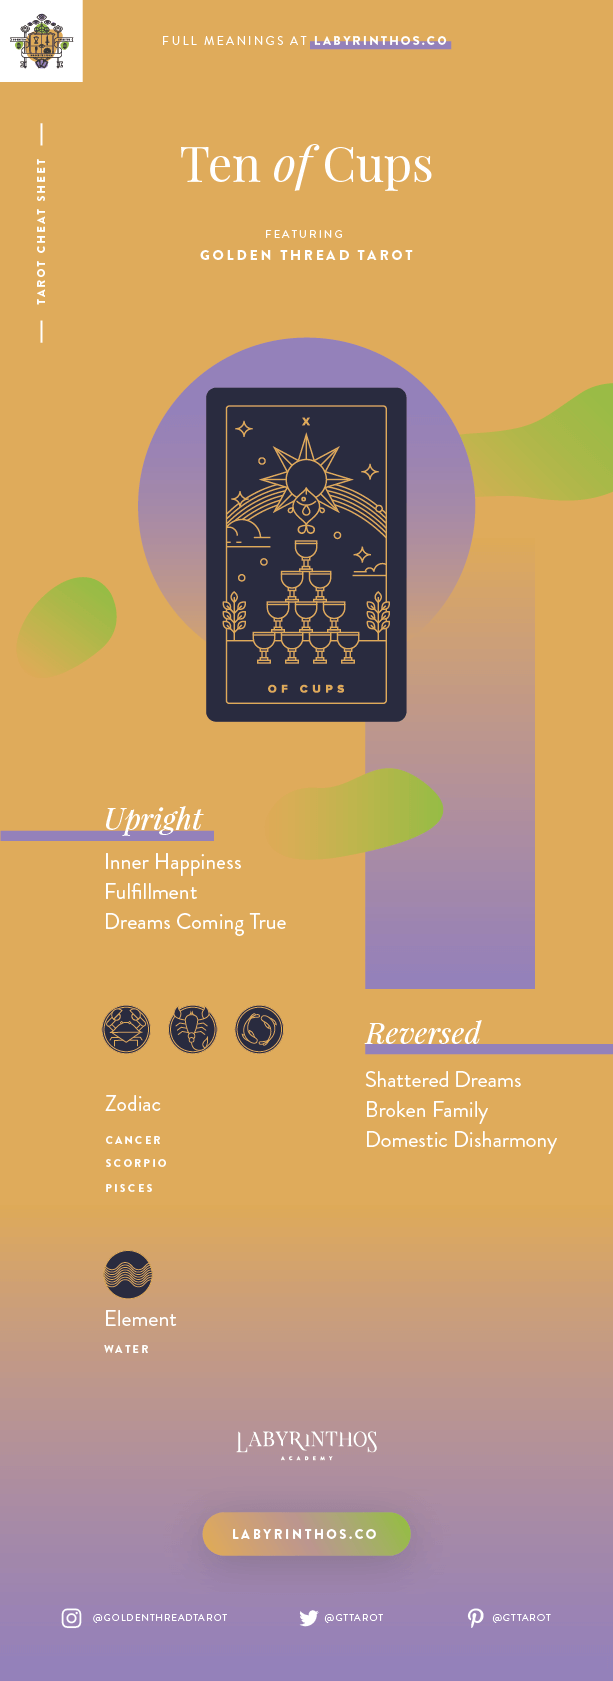 Ten of Cups Meaning - Tarot Card Meanings Cheat Sheet. Art from Golden  Thread Tarot